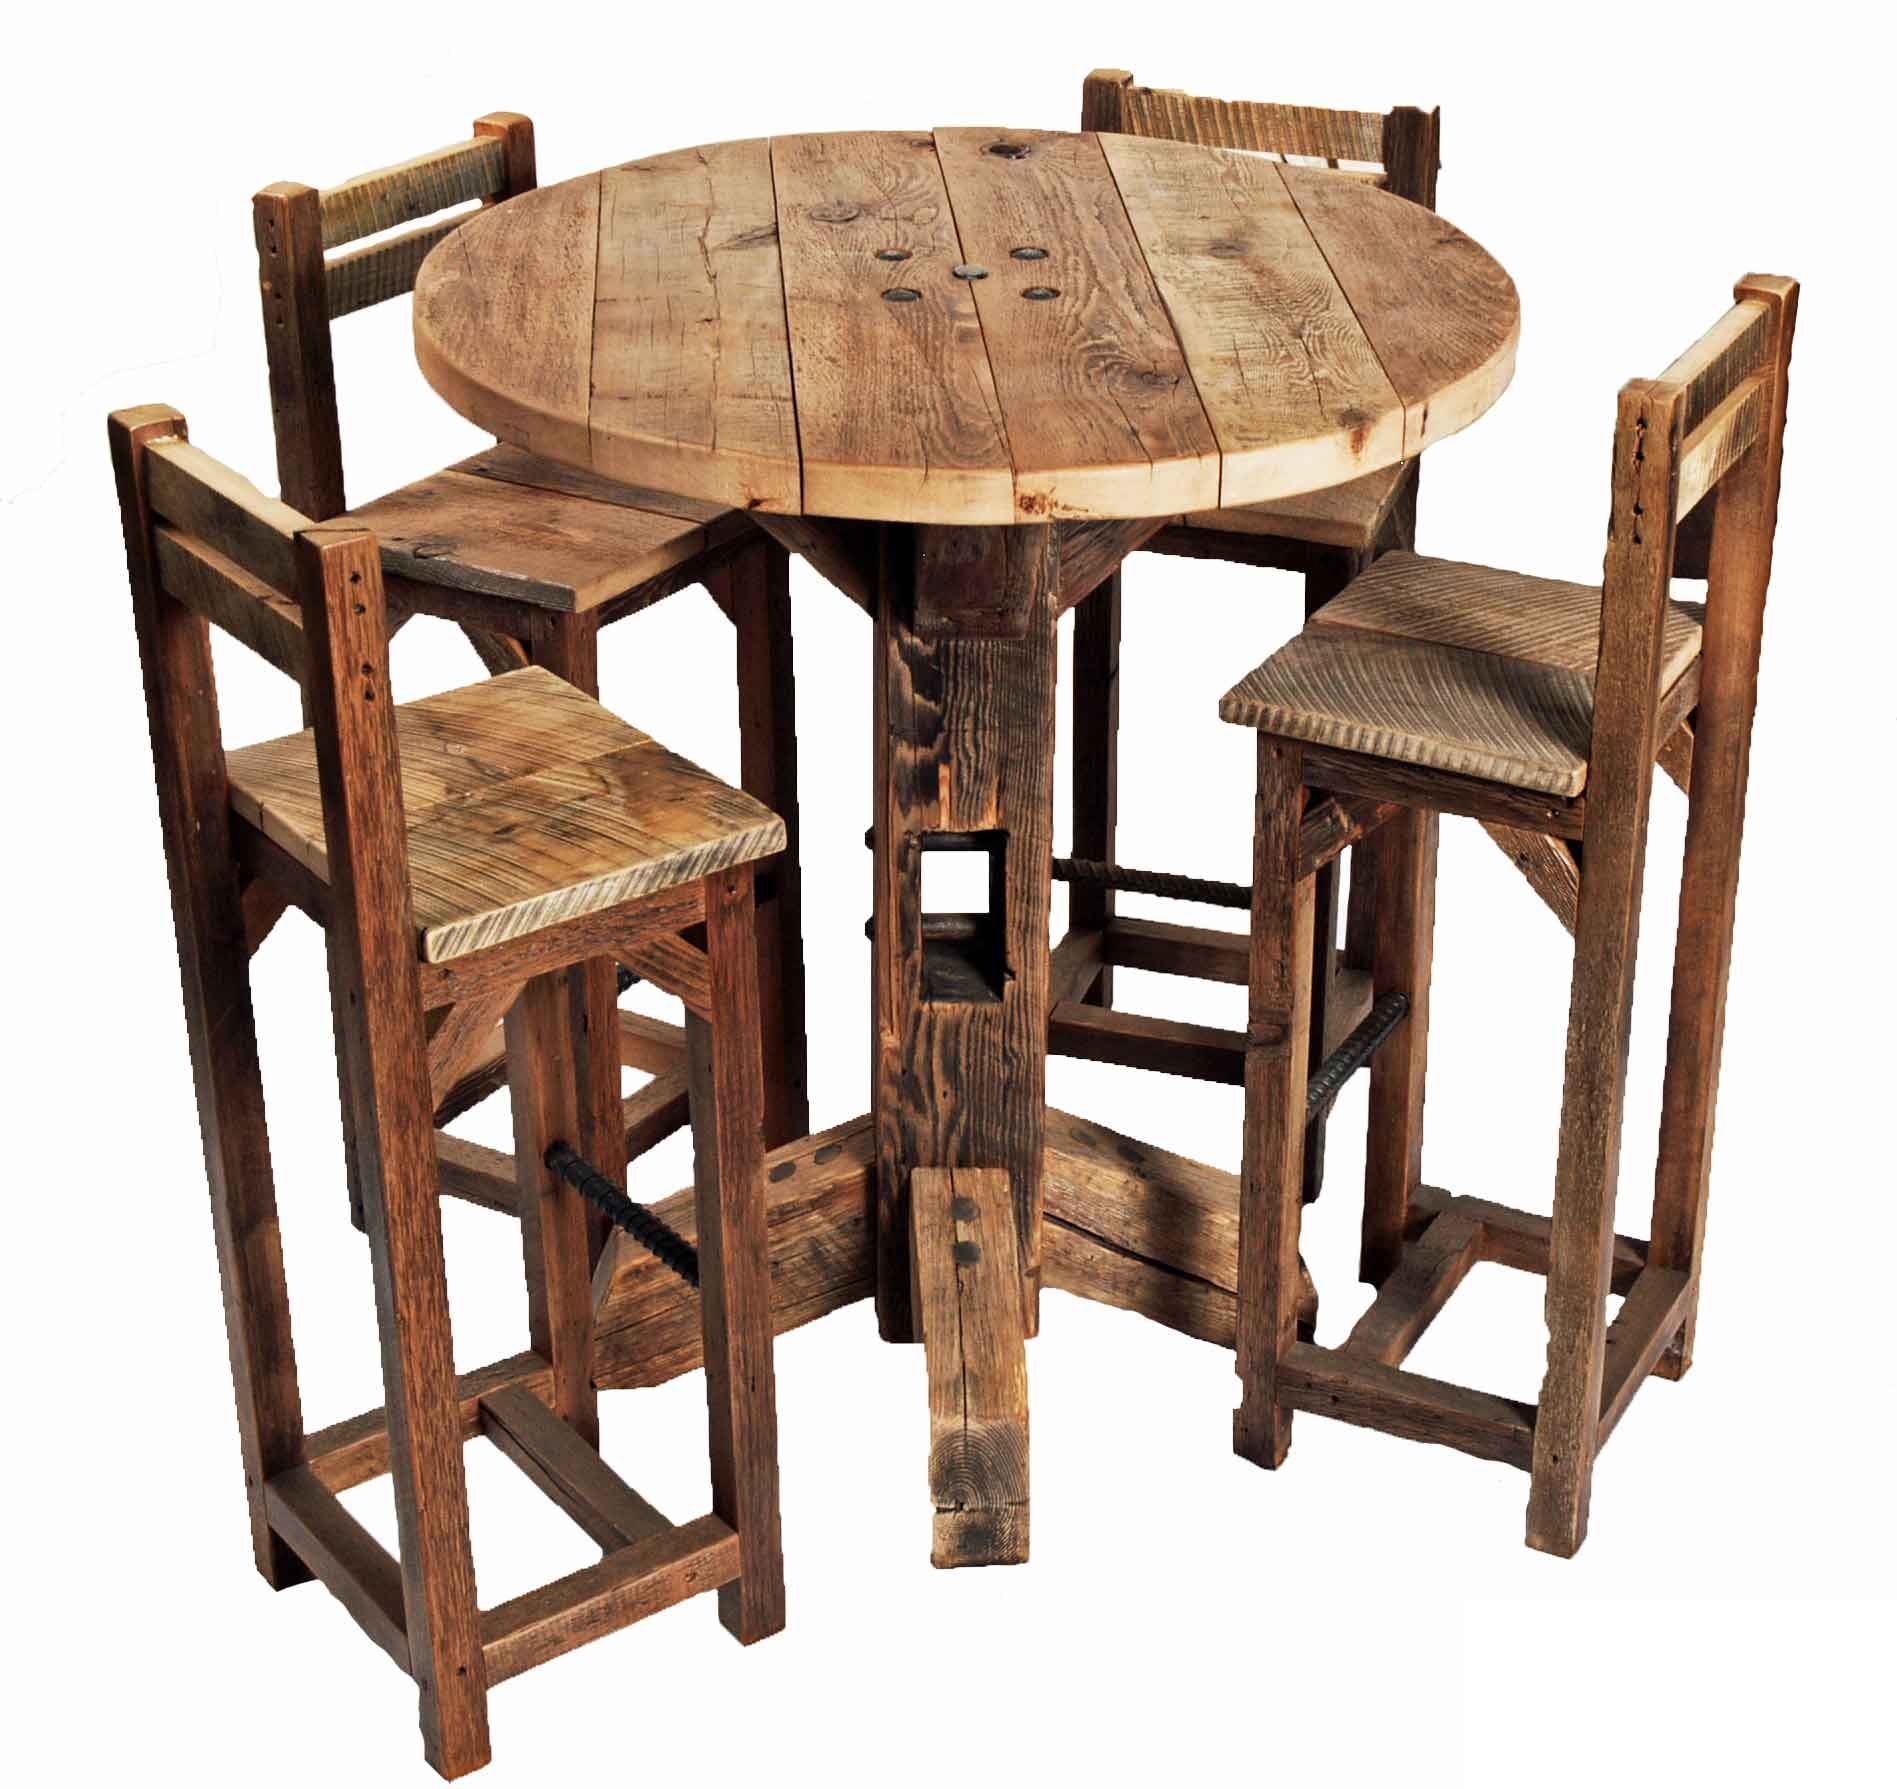 rustic round kitchen tables rustic round kitchen table Rustic round kitchen tables Furniture Old Rustic Small High Round Top Kitchen Table And Chair